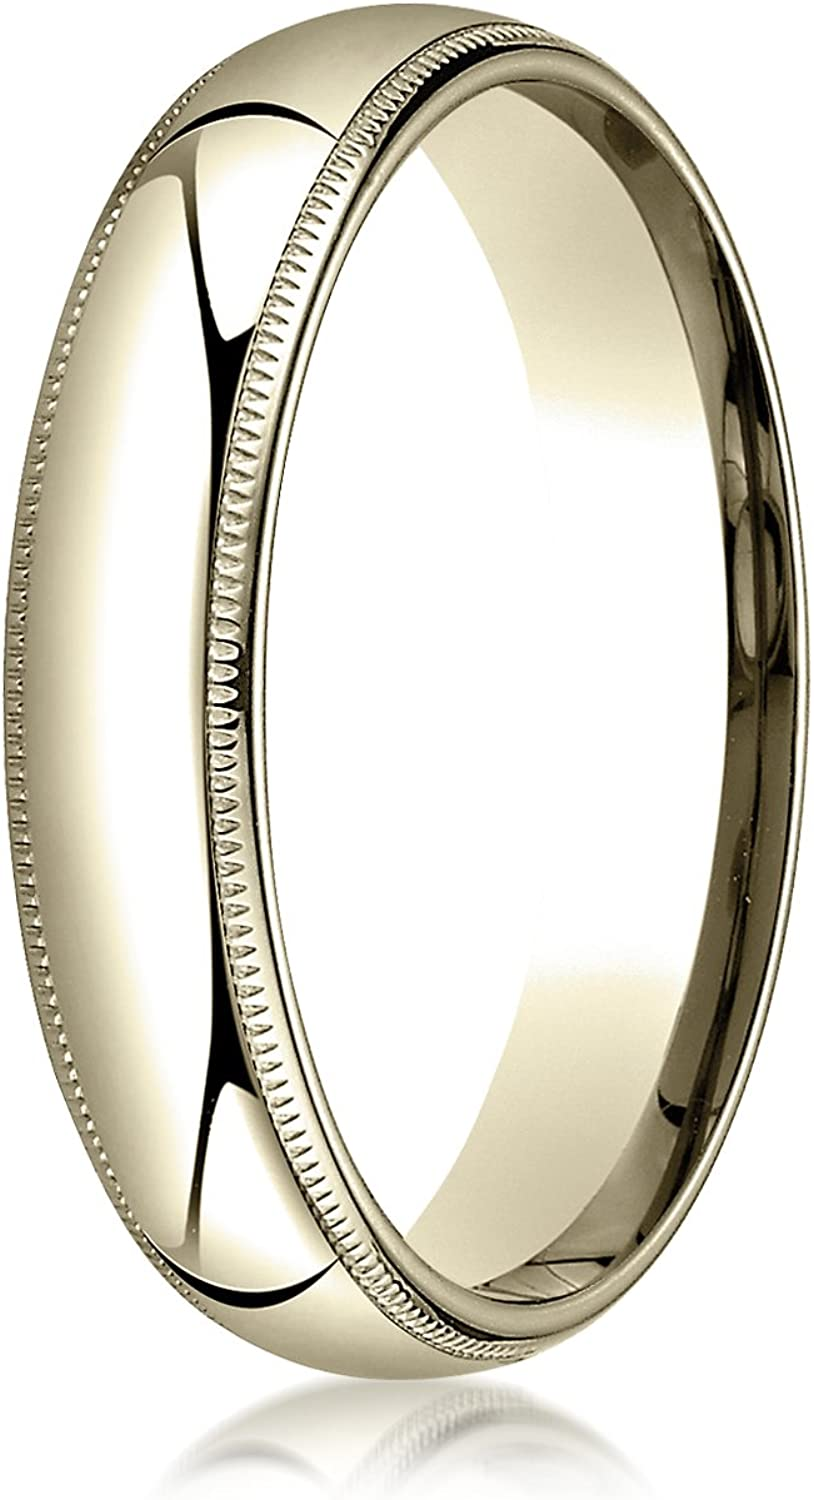 PriceRock 10K Yellow Gold 4mm Slightly Domed Traditional Oval Wedding Band Ring for Men /& Women Size 4 to 15